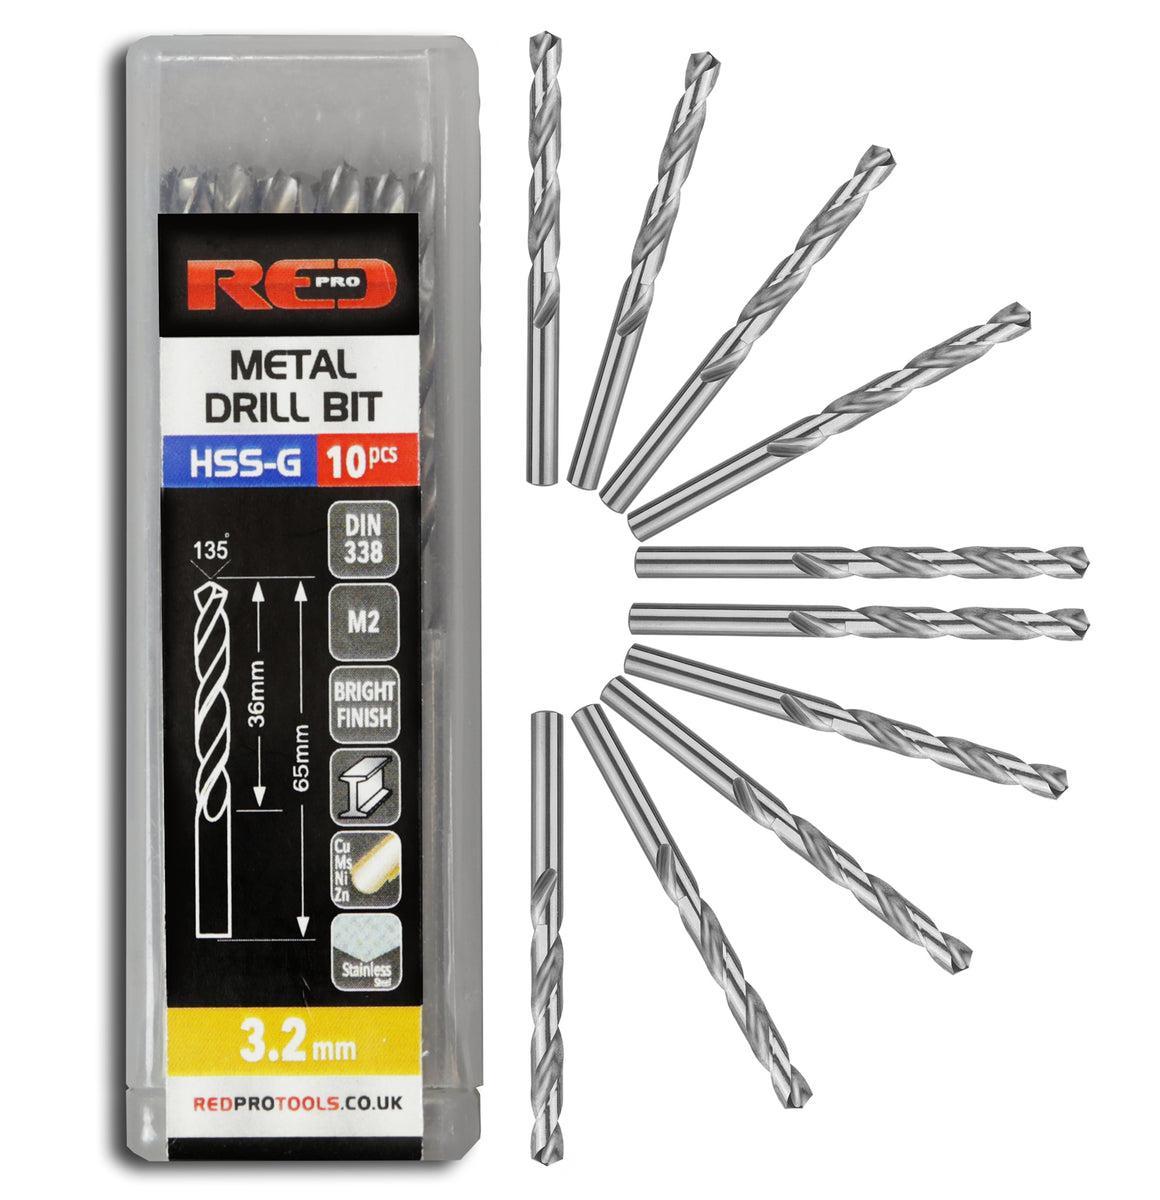 Red Pro Tools Metal Drill Bit HSS-G 3.2mm - 10 Pieces